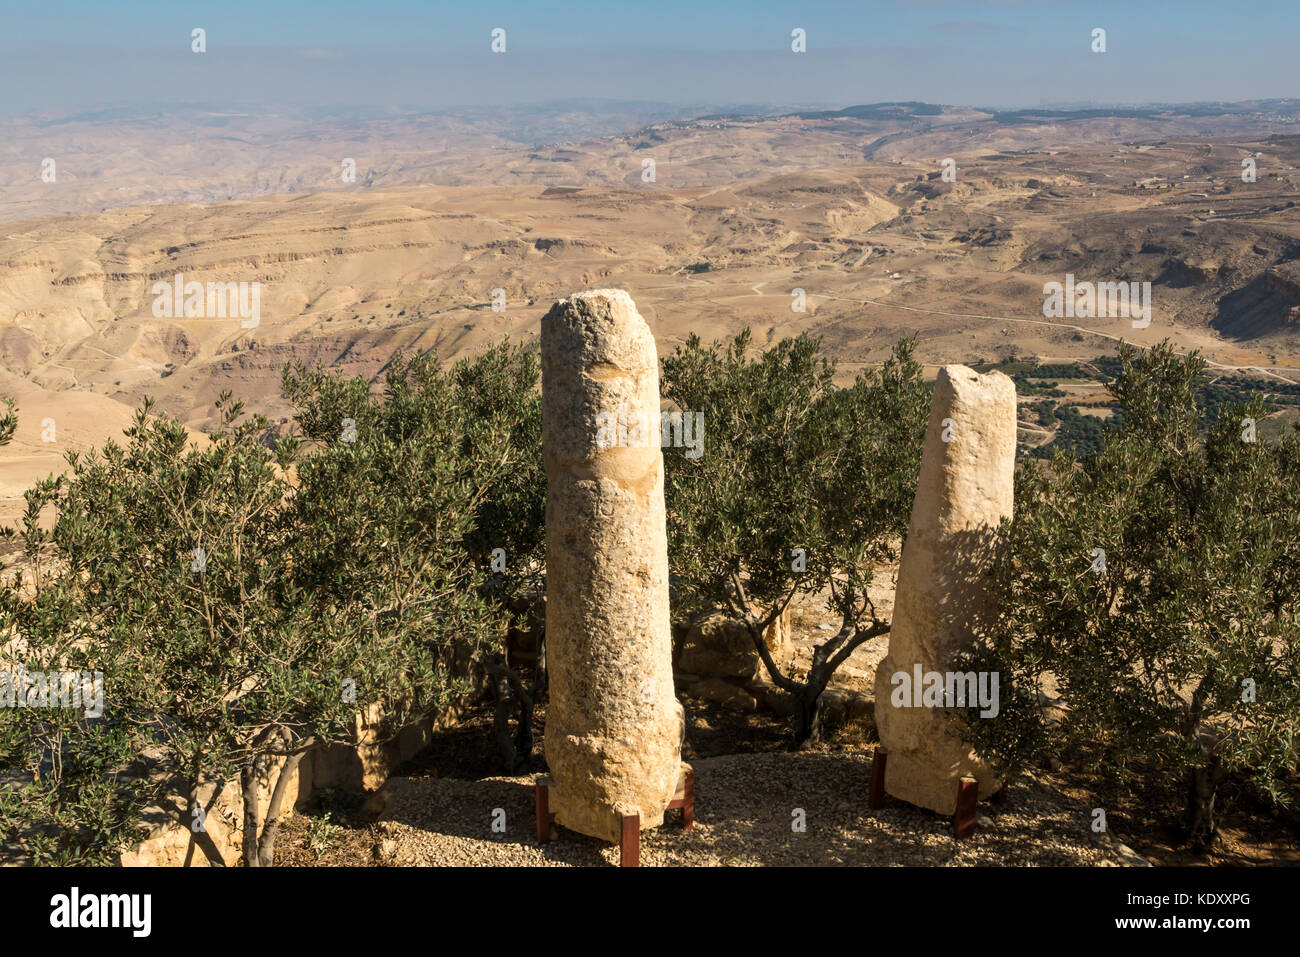 Roman milestone pillars in foreground, which lined the ancient pilgrimage route between Jerusalem and Mount Nebo, - Stock Image